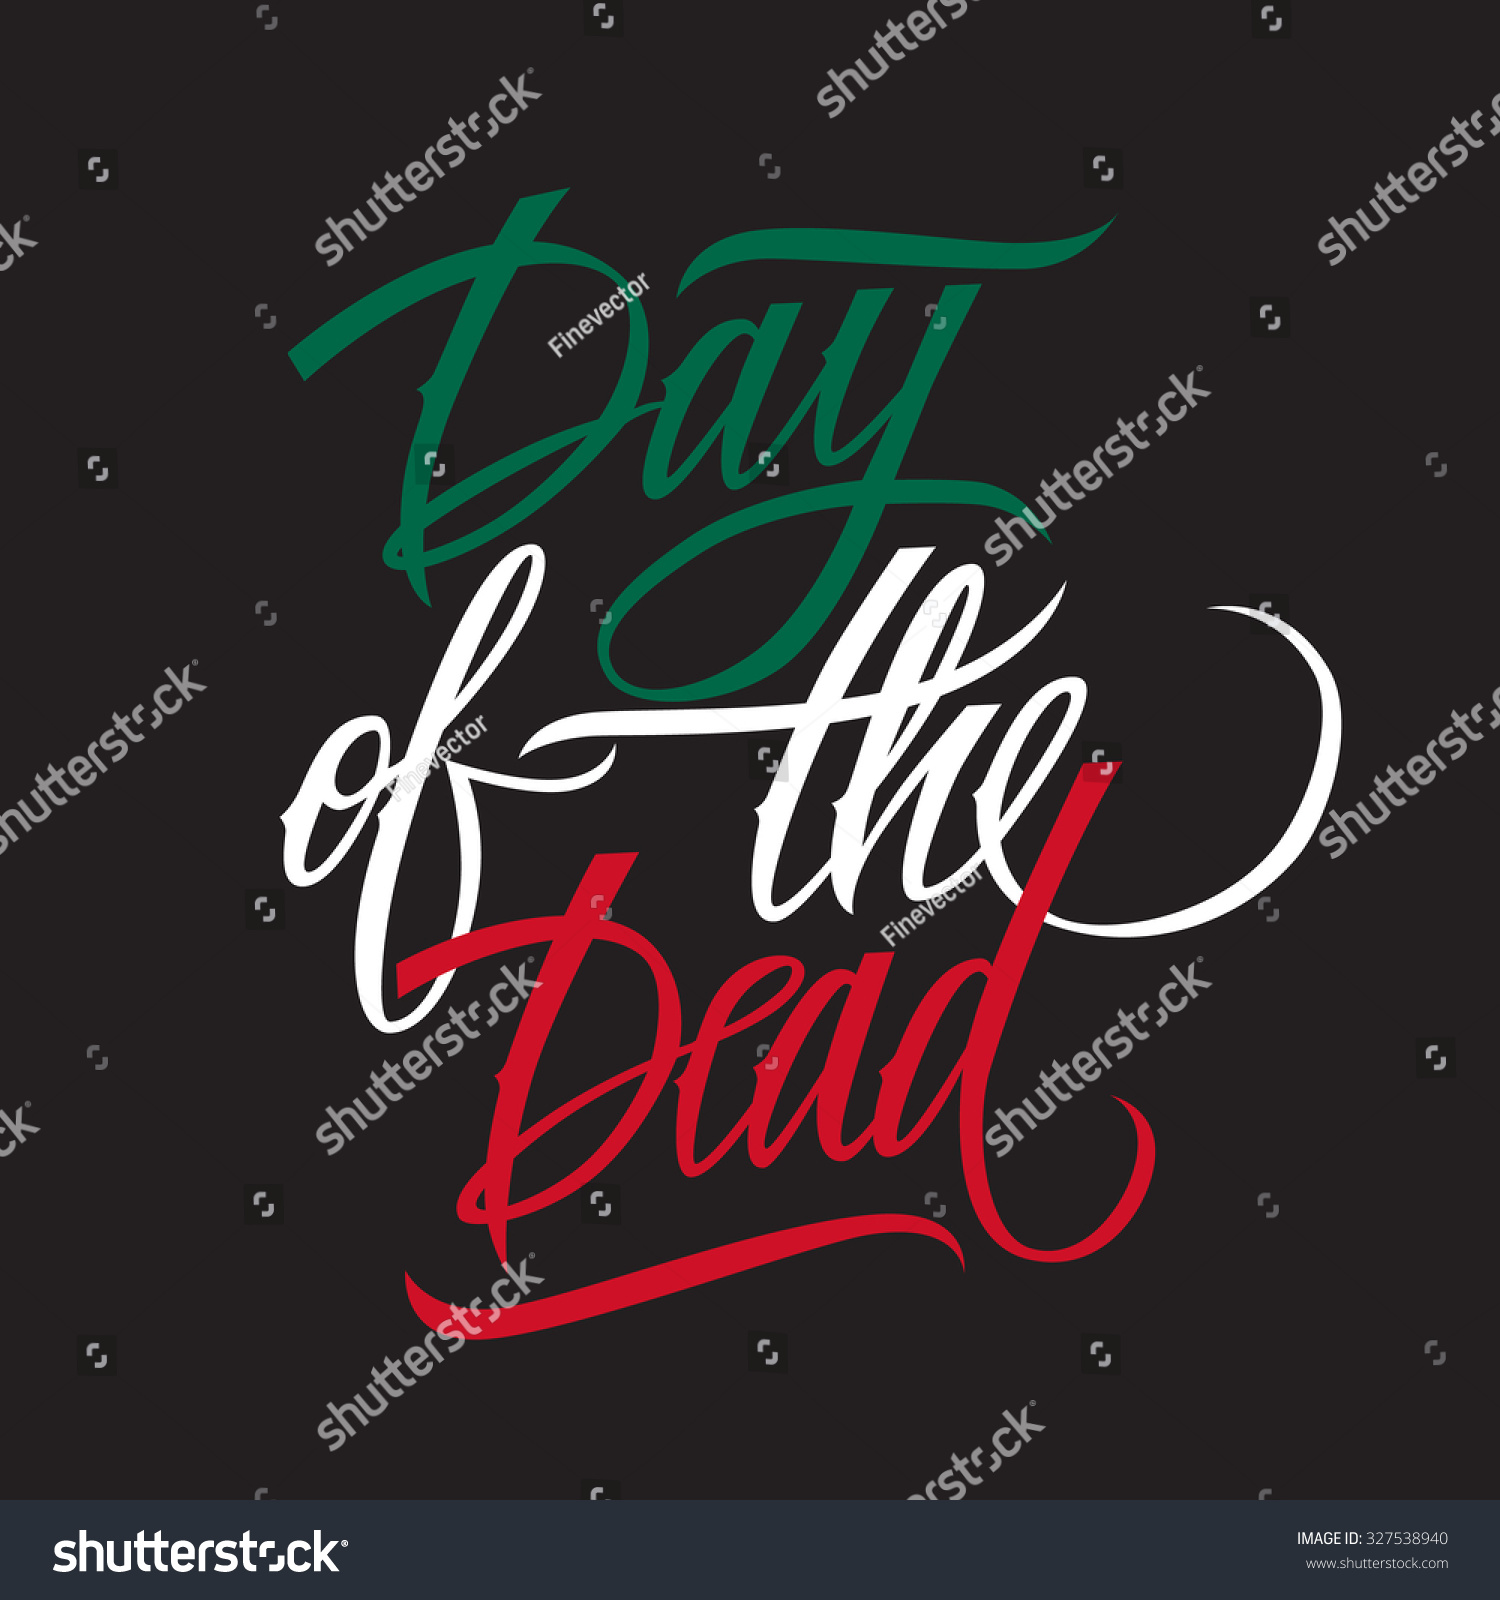 Day dead calligraphy day dead lettering stock vector 327538940 day of the dead calligraphy day of the dead lettering design card template creative m4hsunfo